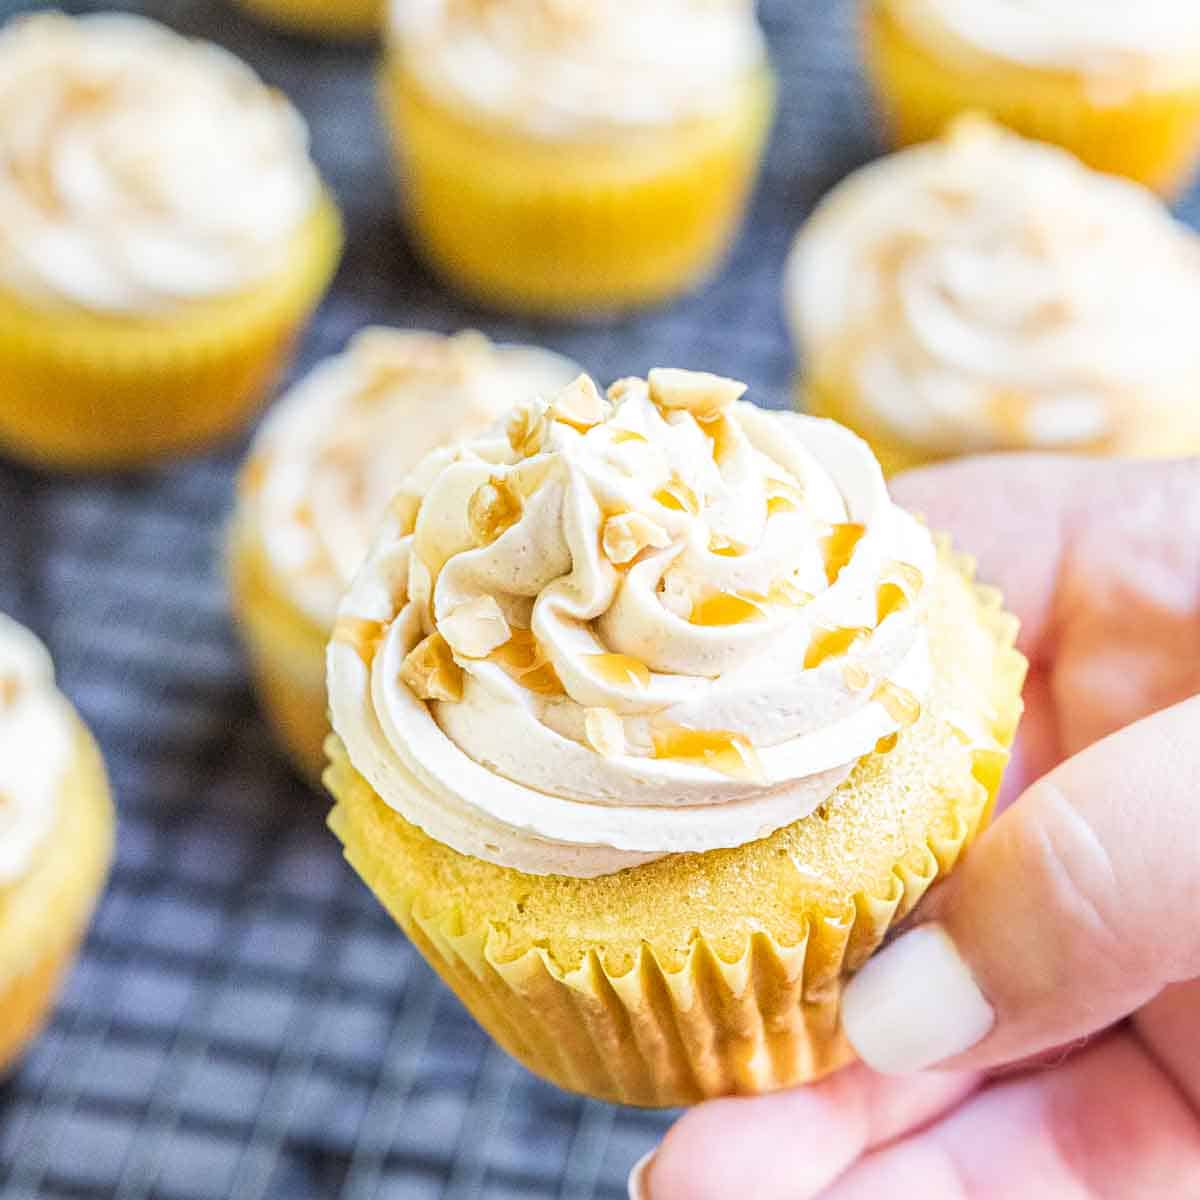 Hand holding frosted caramel apple cupcakes